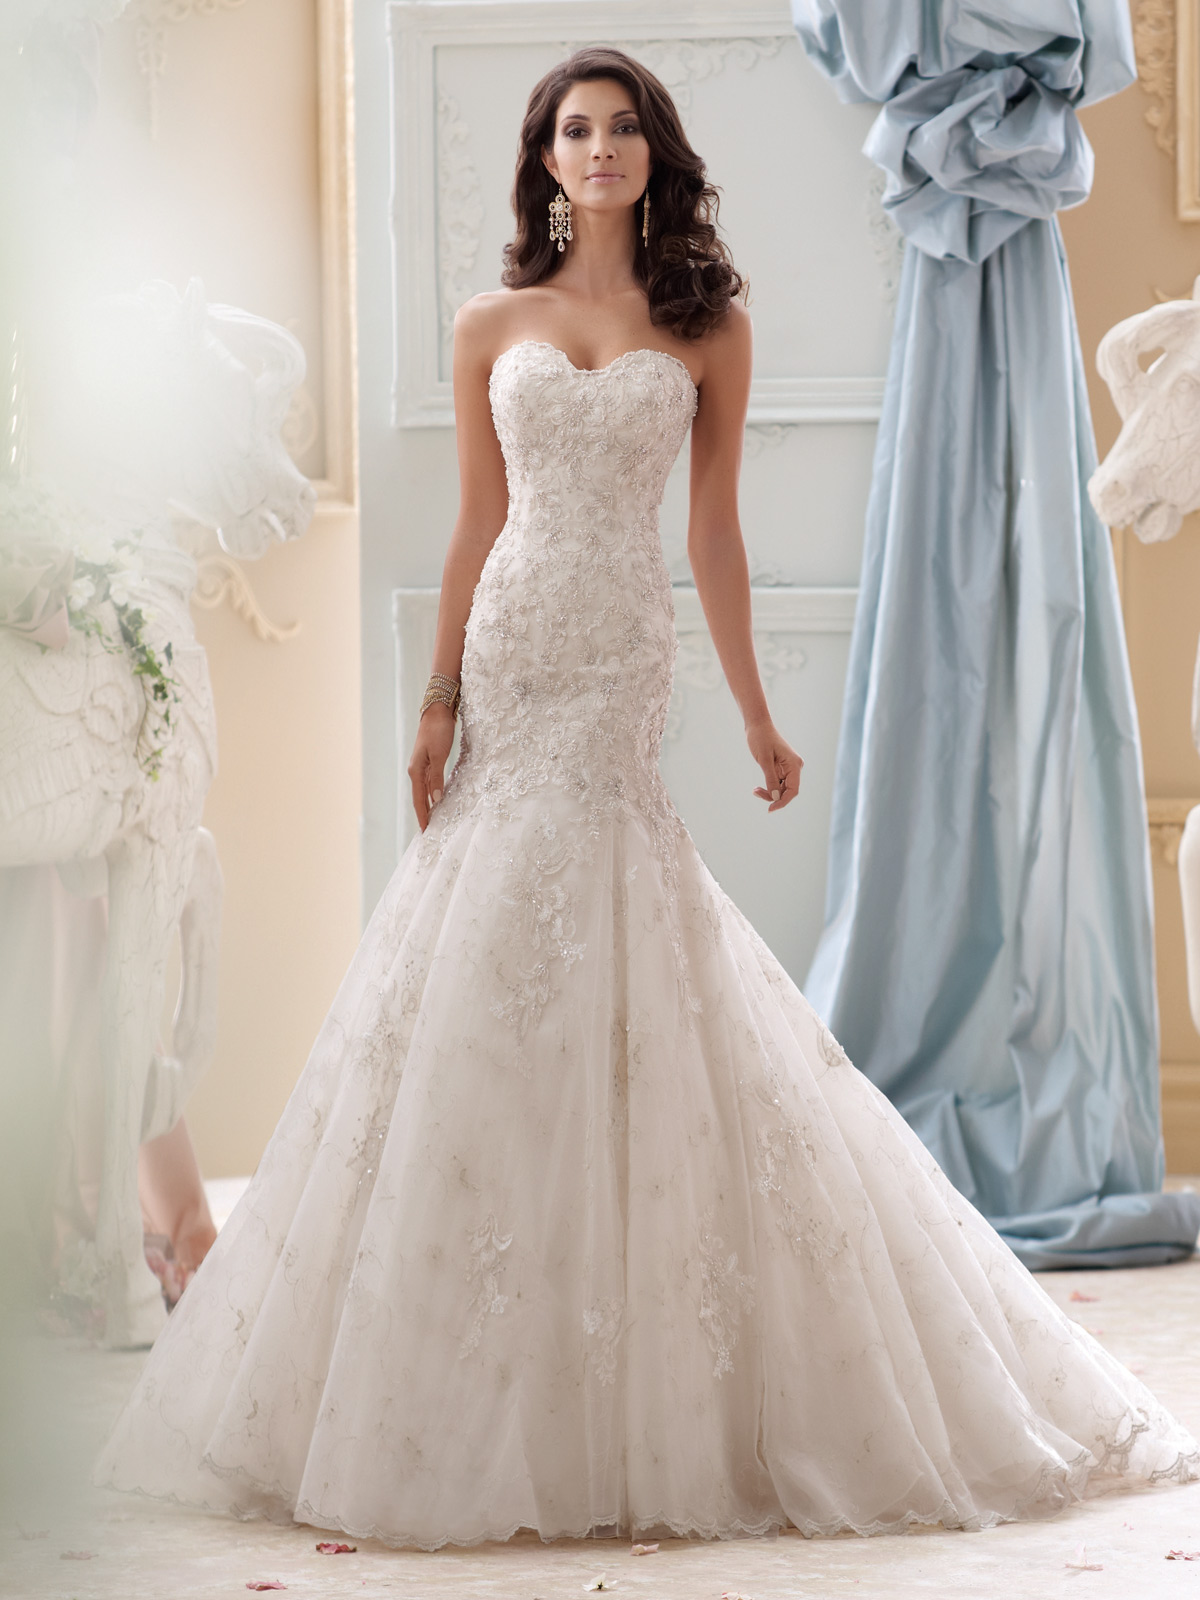 general-ideas-enchanting-donate-wedding-dresses-in-tampa-florida-2015-wonderful-chic-and-nice-2015-wedding-dresses-stunning-elegant-2015-wedding-dress-designs-short-wedding-dress-2015